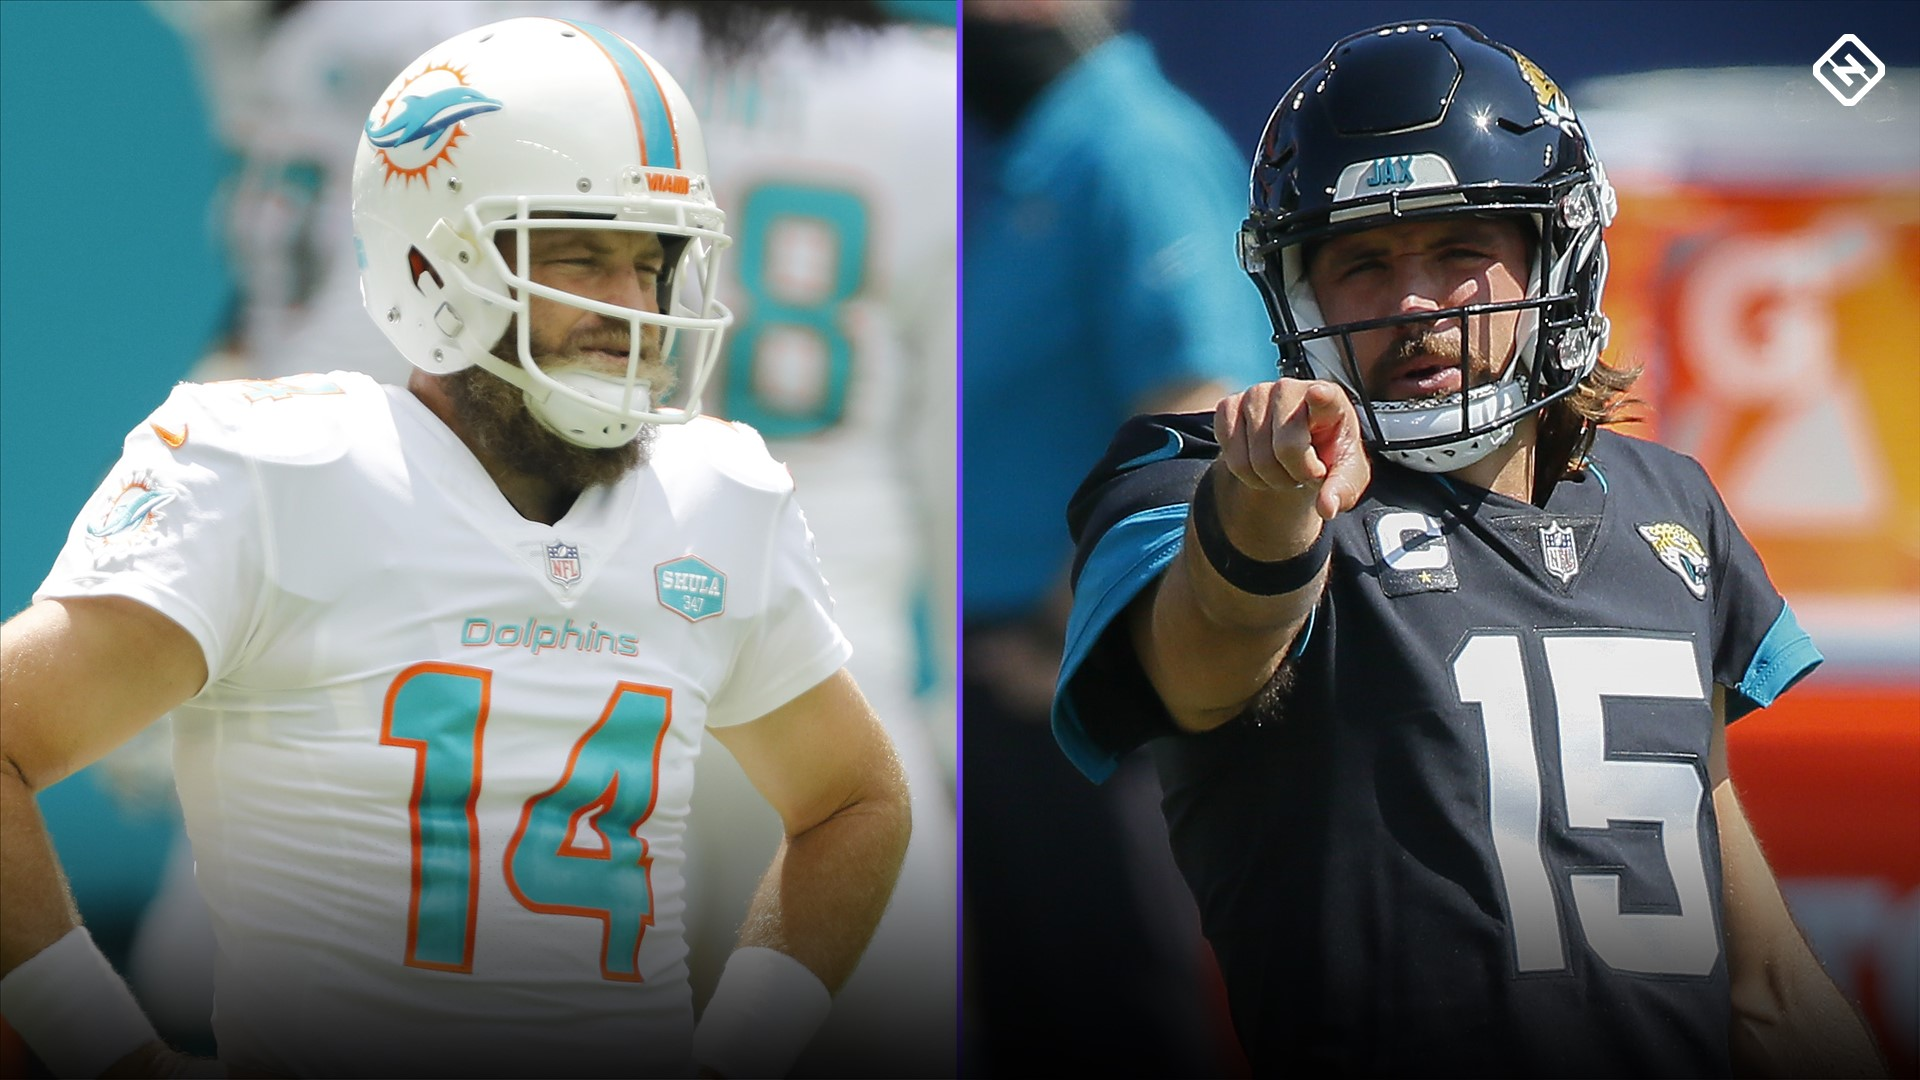 What time is the NFL game tonight? TV schedule, channel for Dolphins vs. Jaguars in Week 3 1